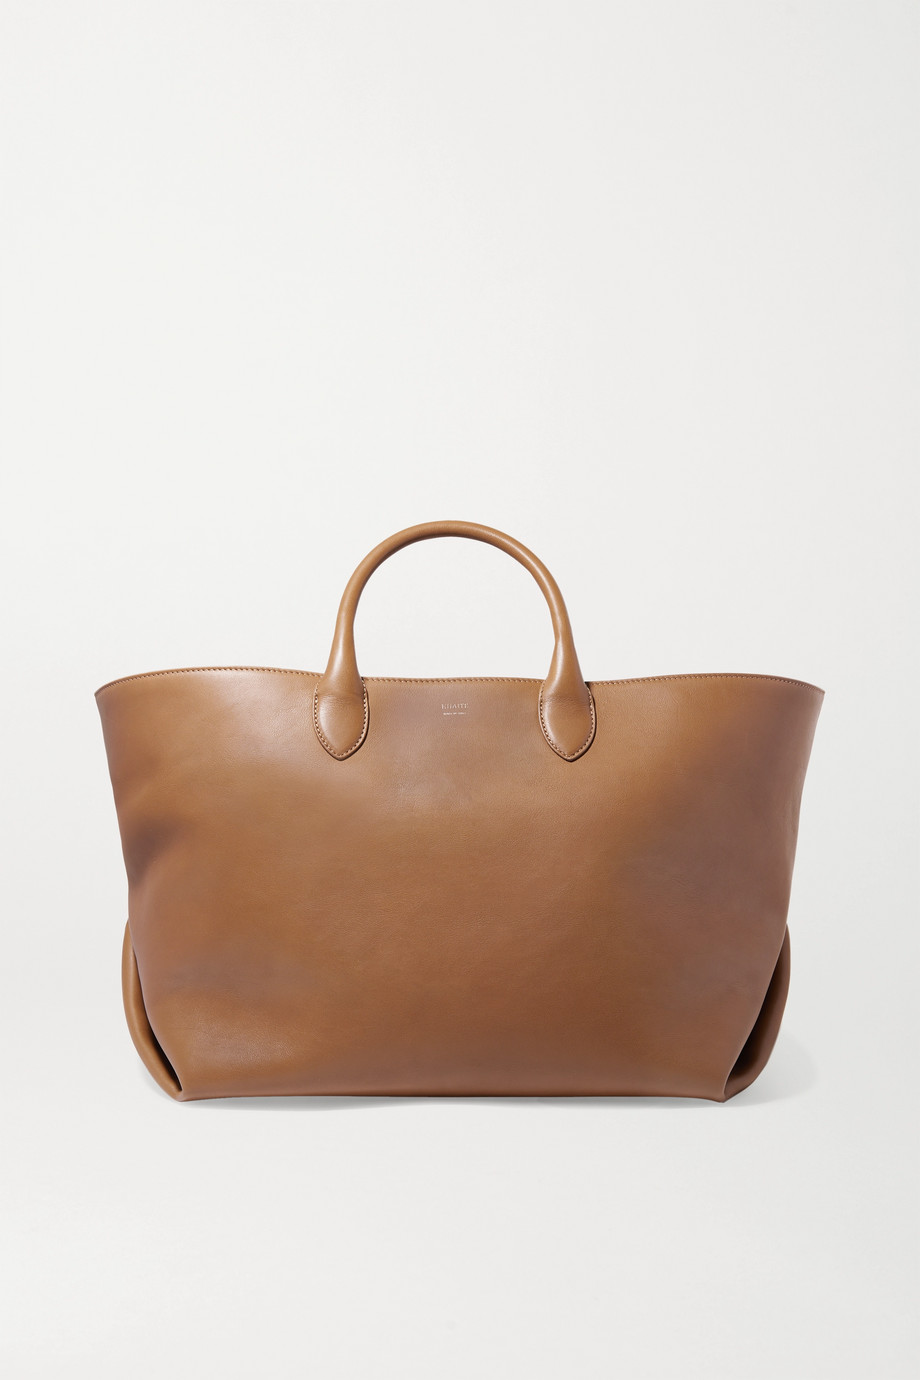 Khaite Envelope Pleat medium leather tote